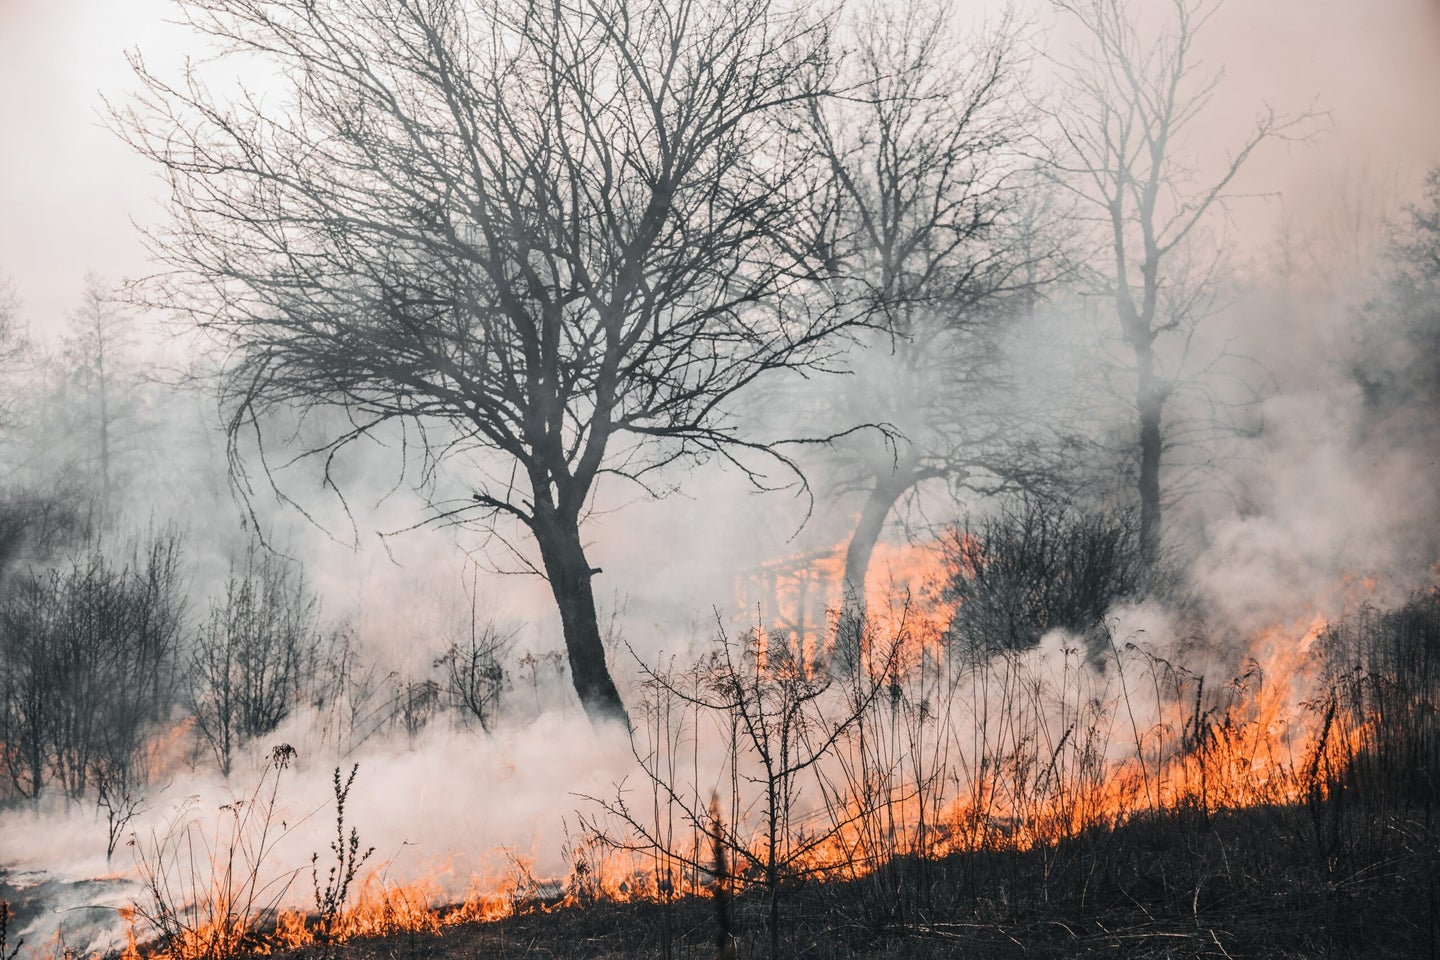 Wildfire in forest with smoke and flames.